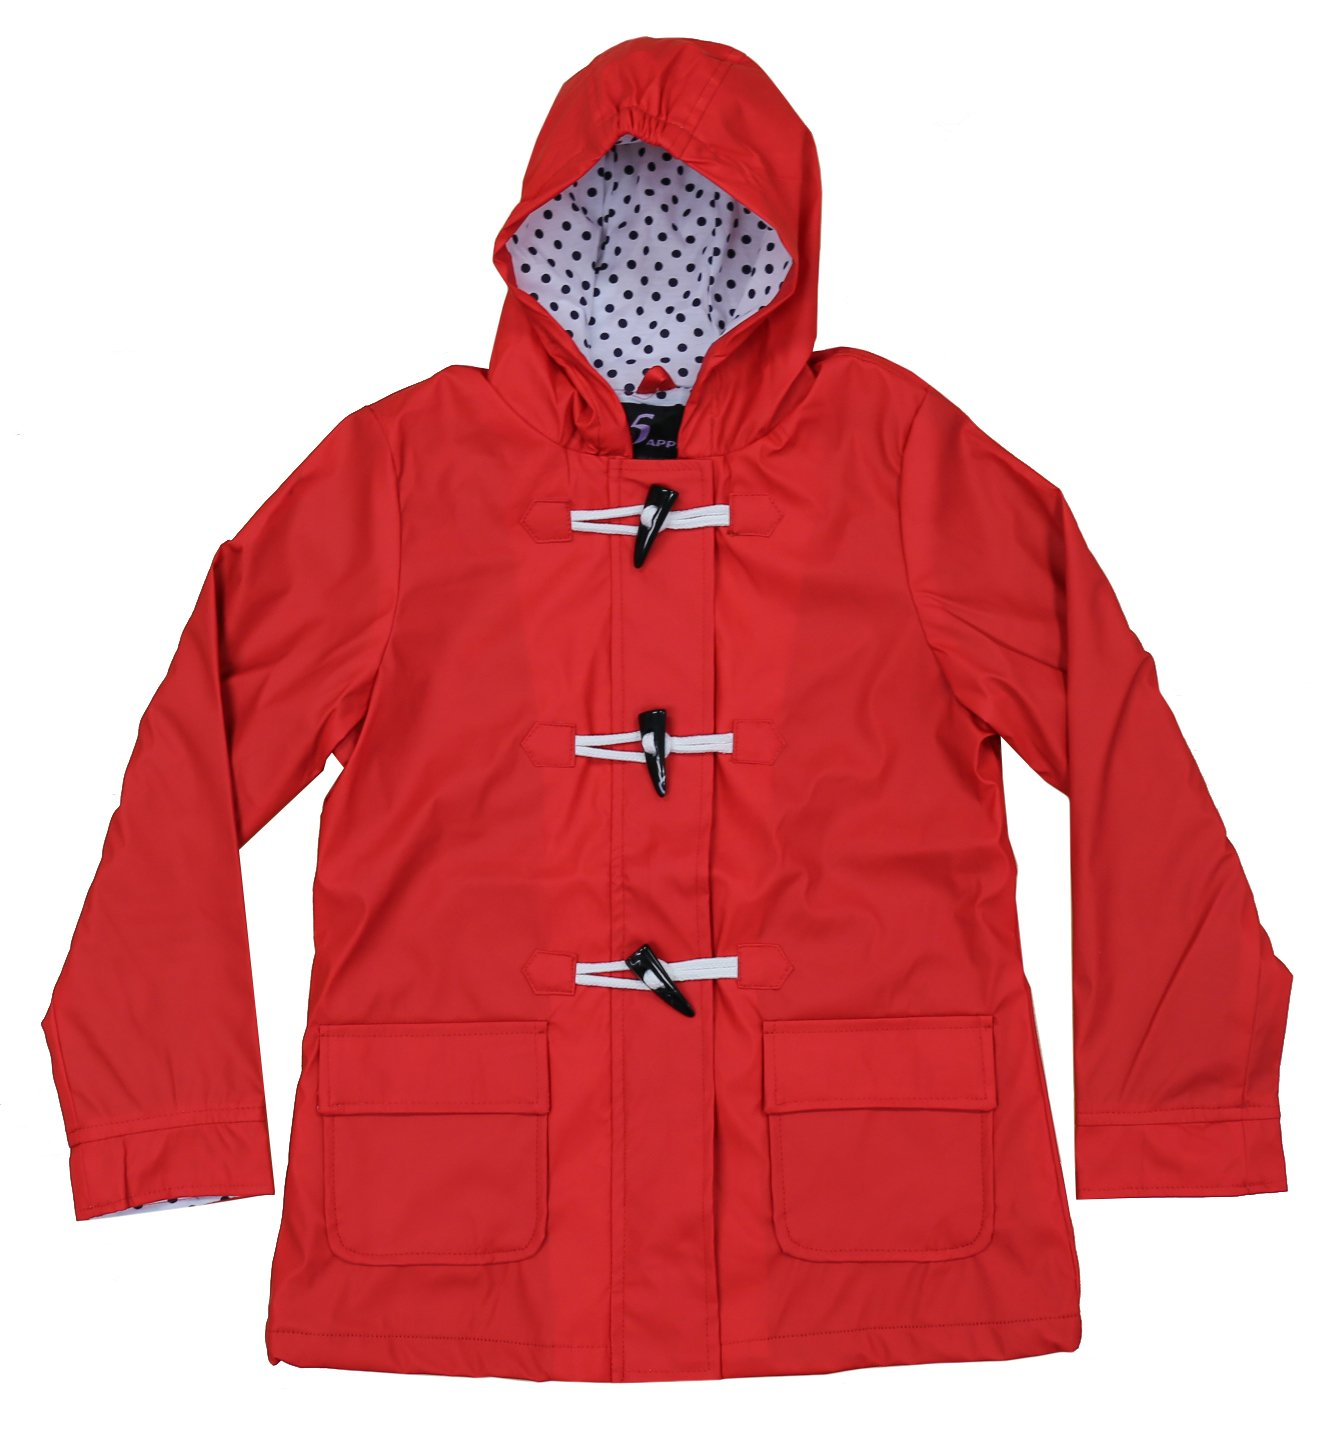 Apparel No. 5 Girls' Hooded Fully Lined Toggle Packable Rain Coat